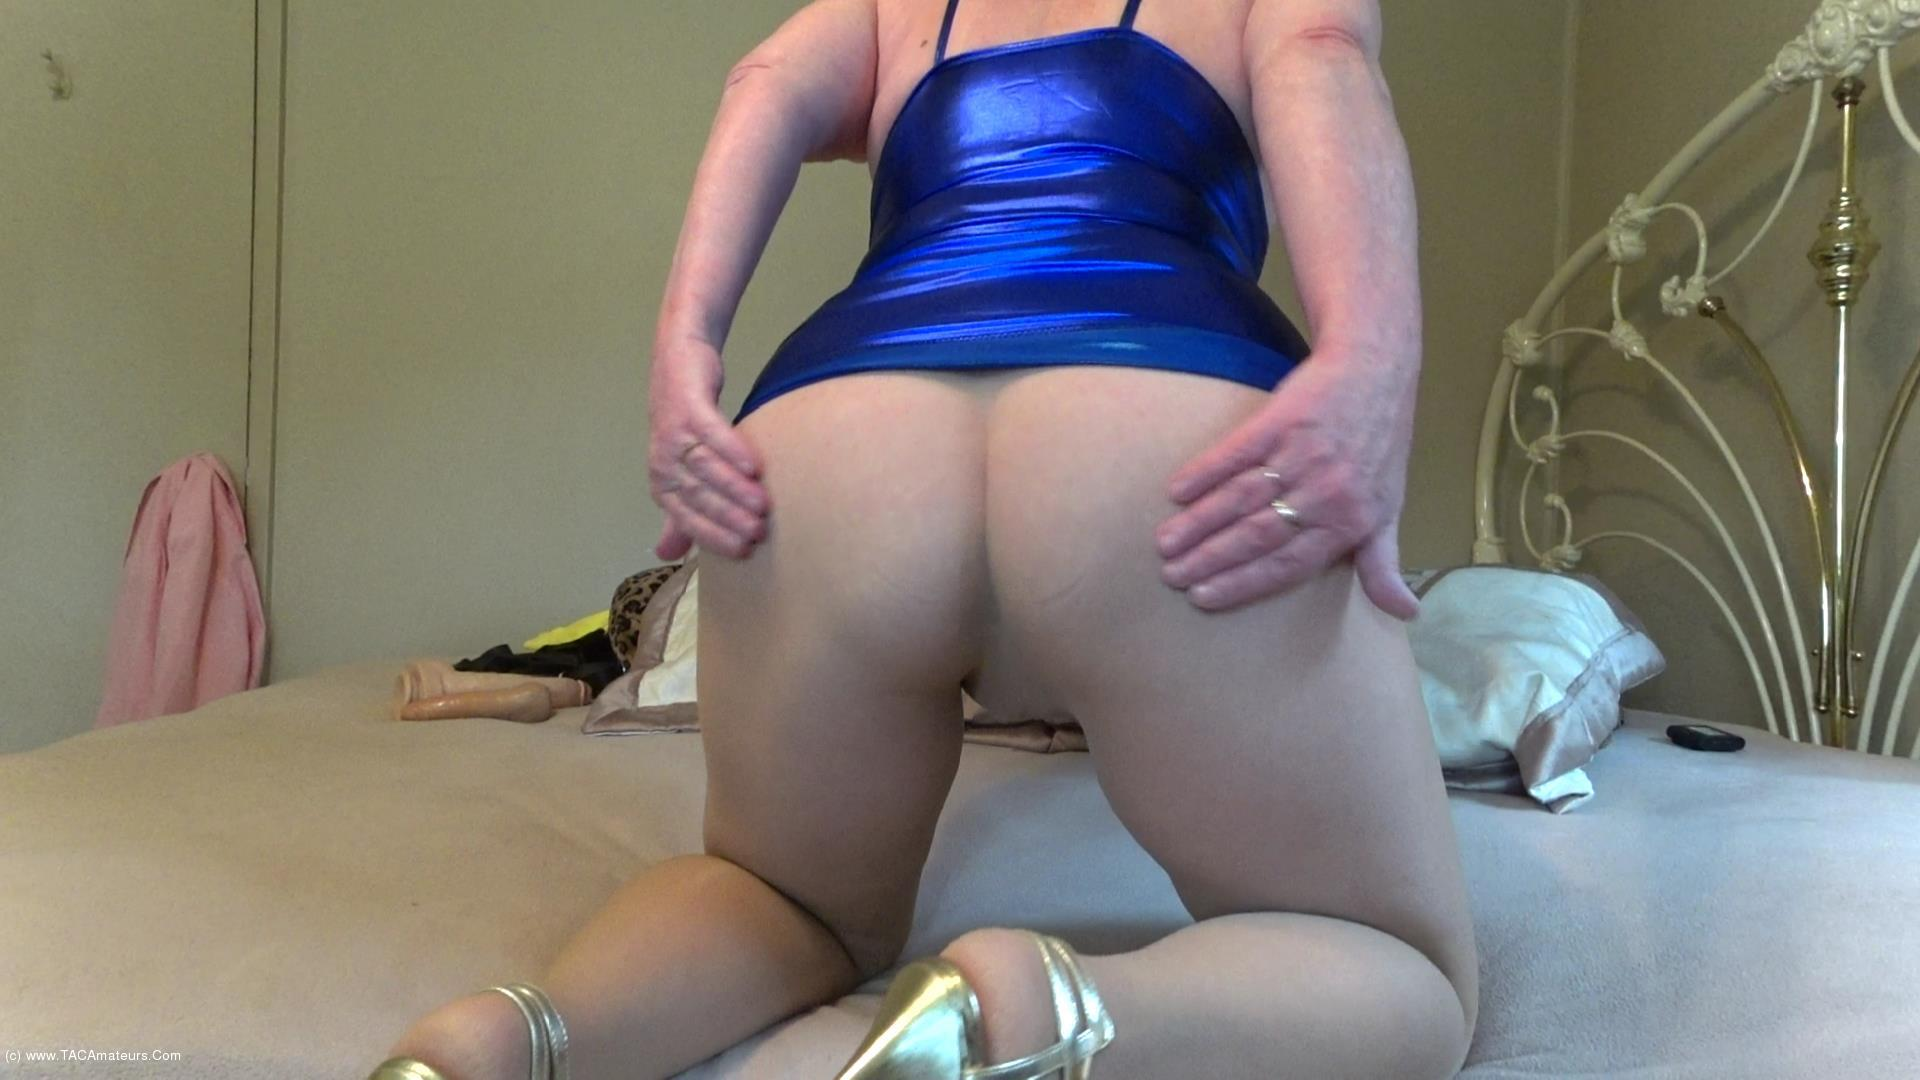 CougarBabeJolee - Sultry In PVC & Pantyhose Pt2 scene 3